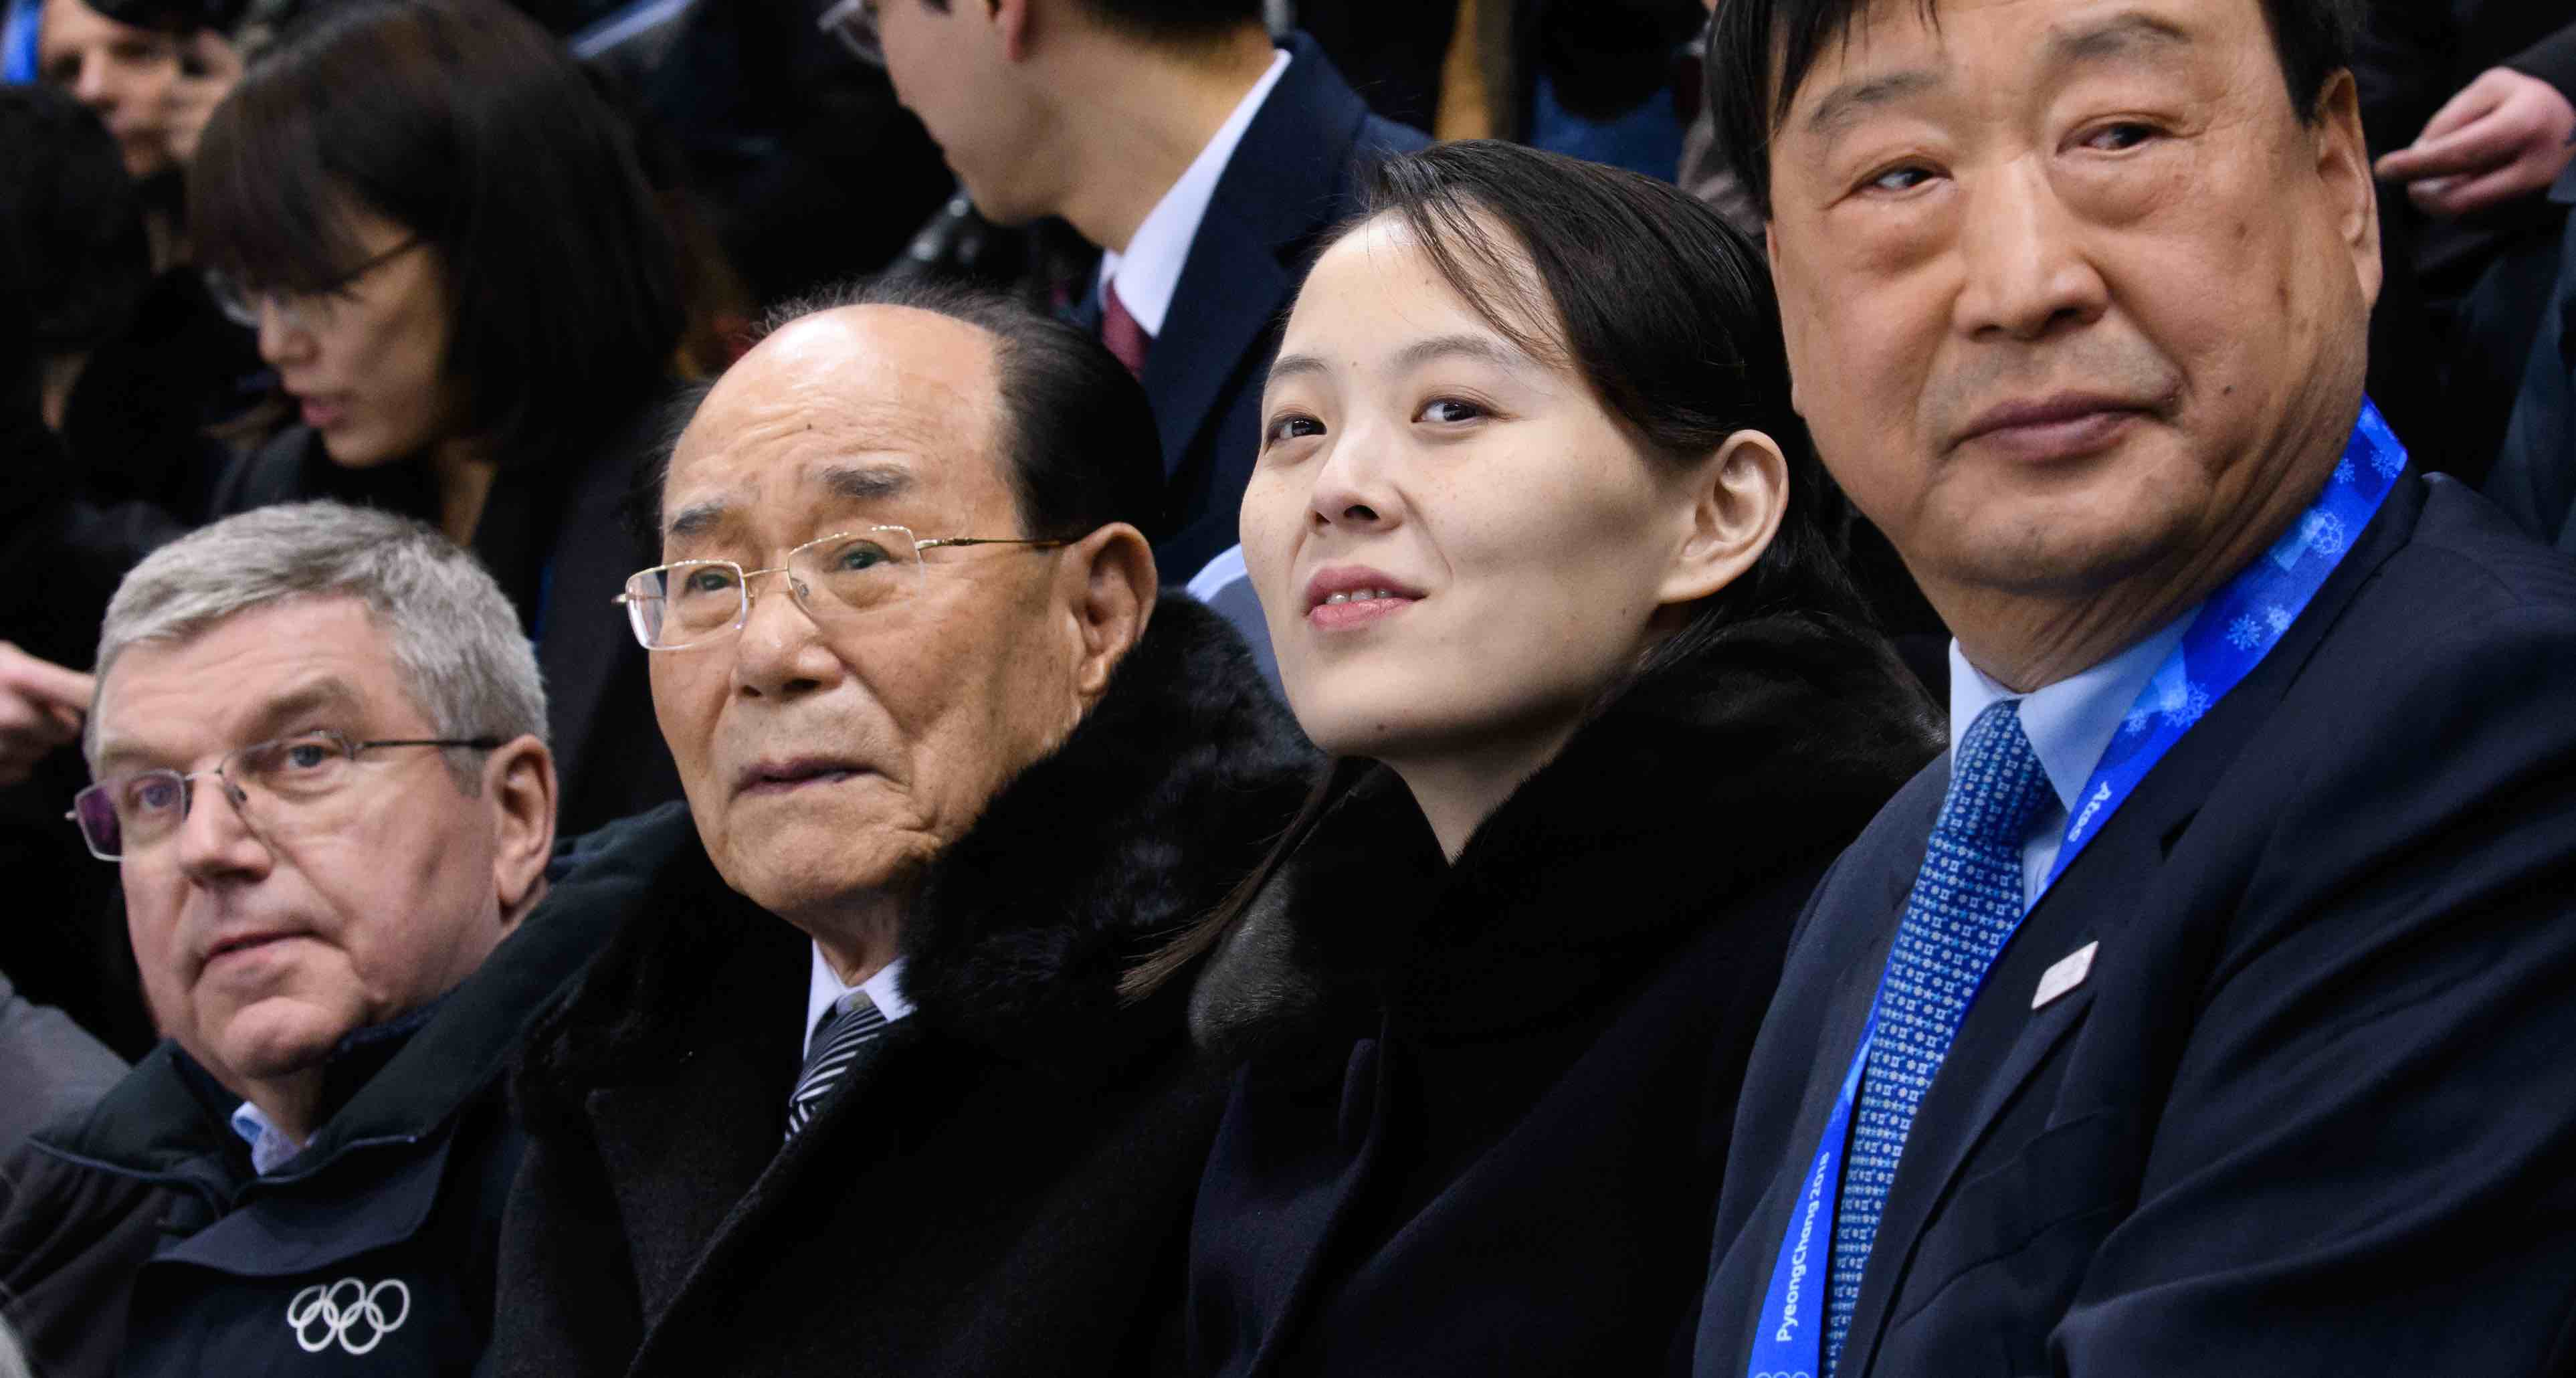 Kim Yo-jong, sister of North Korean leader Kim Jong-un, at the PyeongChang 2018 Winter Olympics (Photo: Republic of Korea/Flickr)